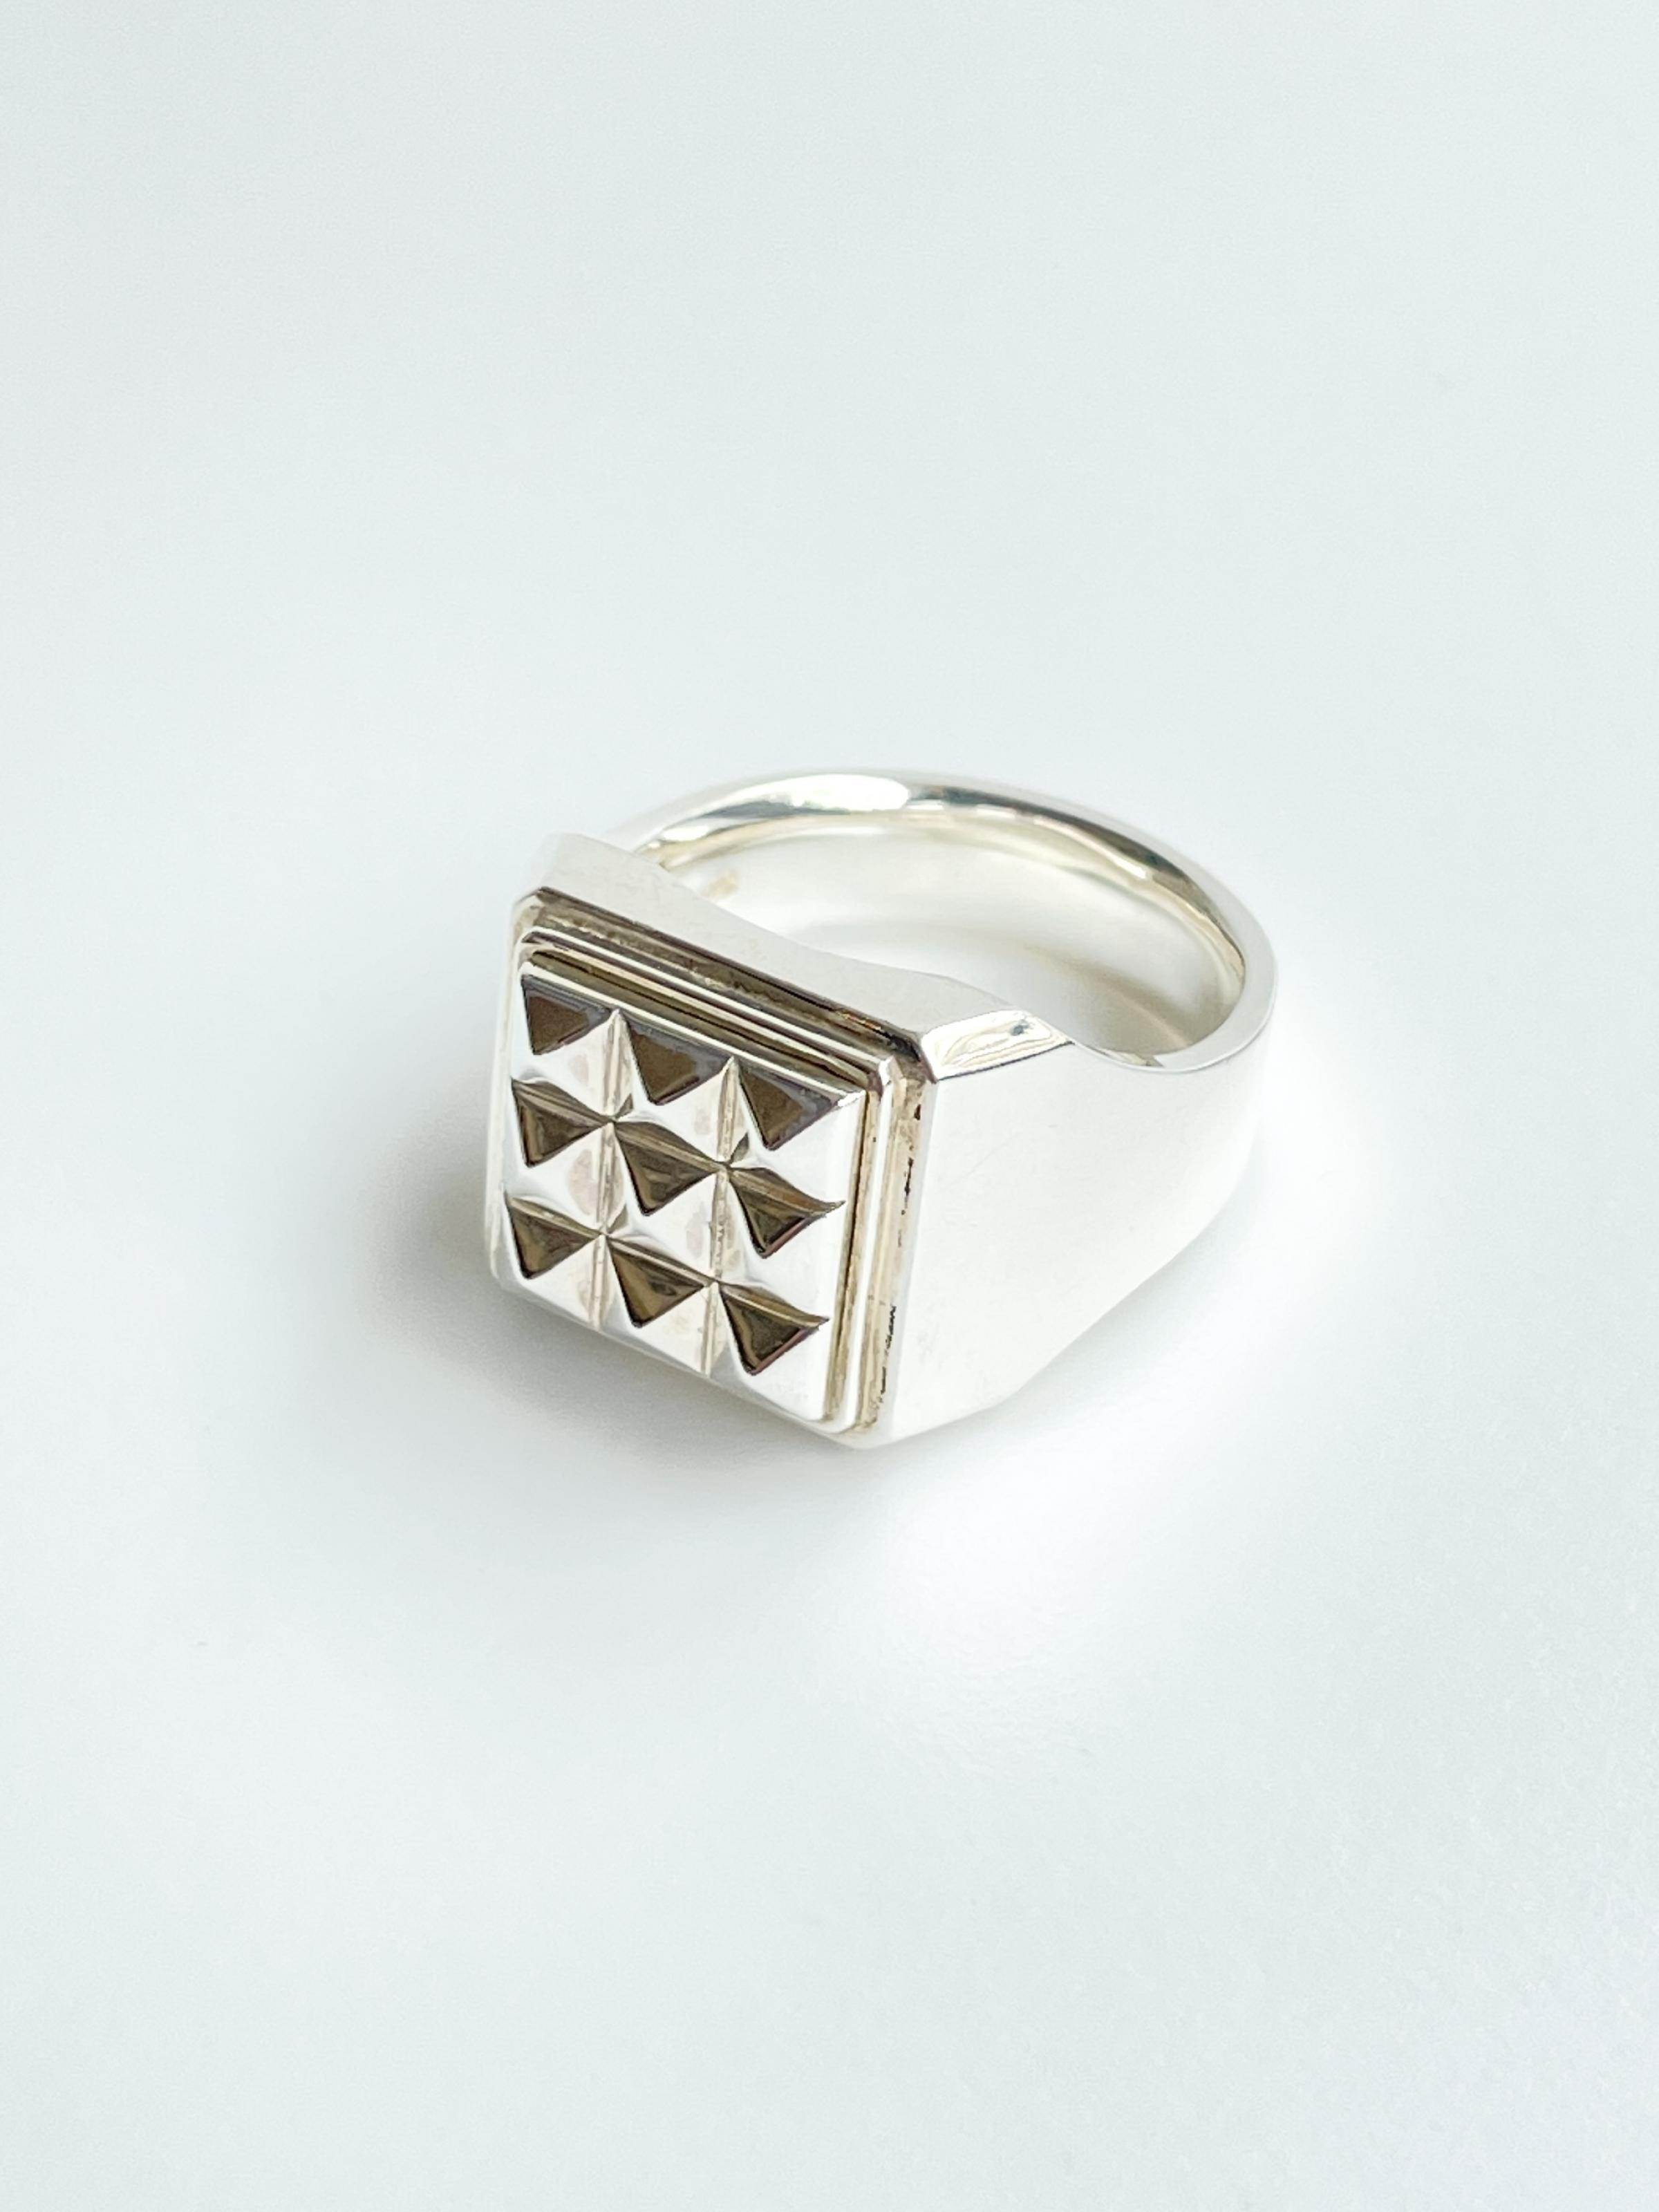 9-GRATER SILVER